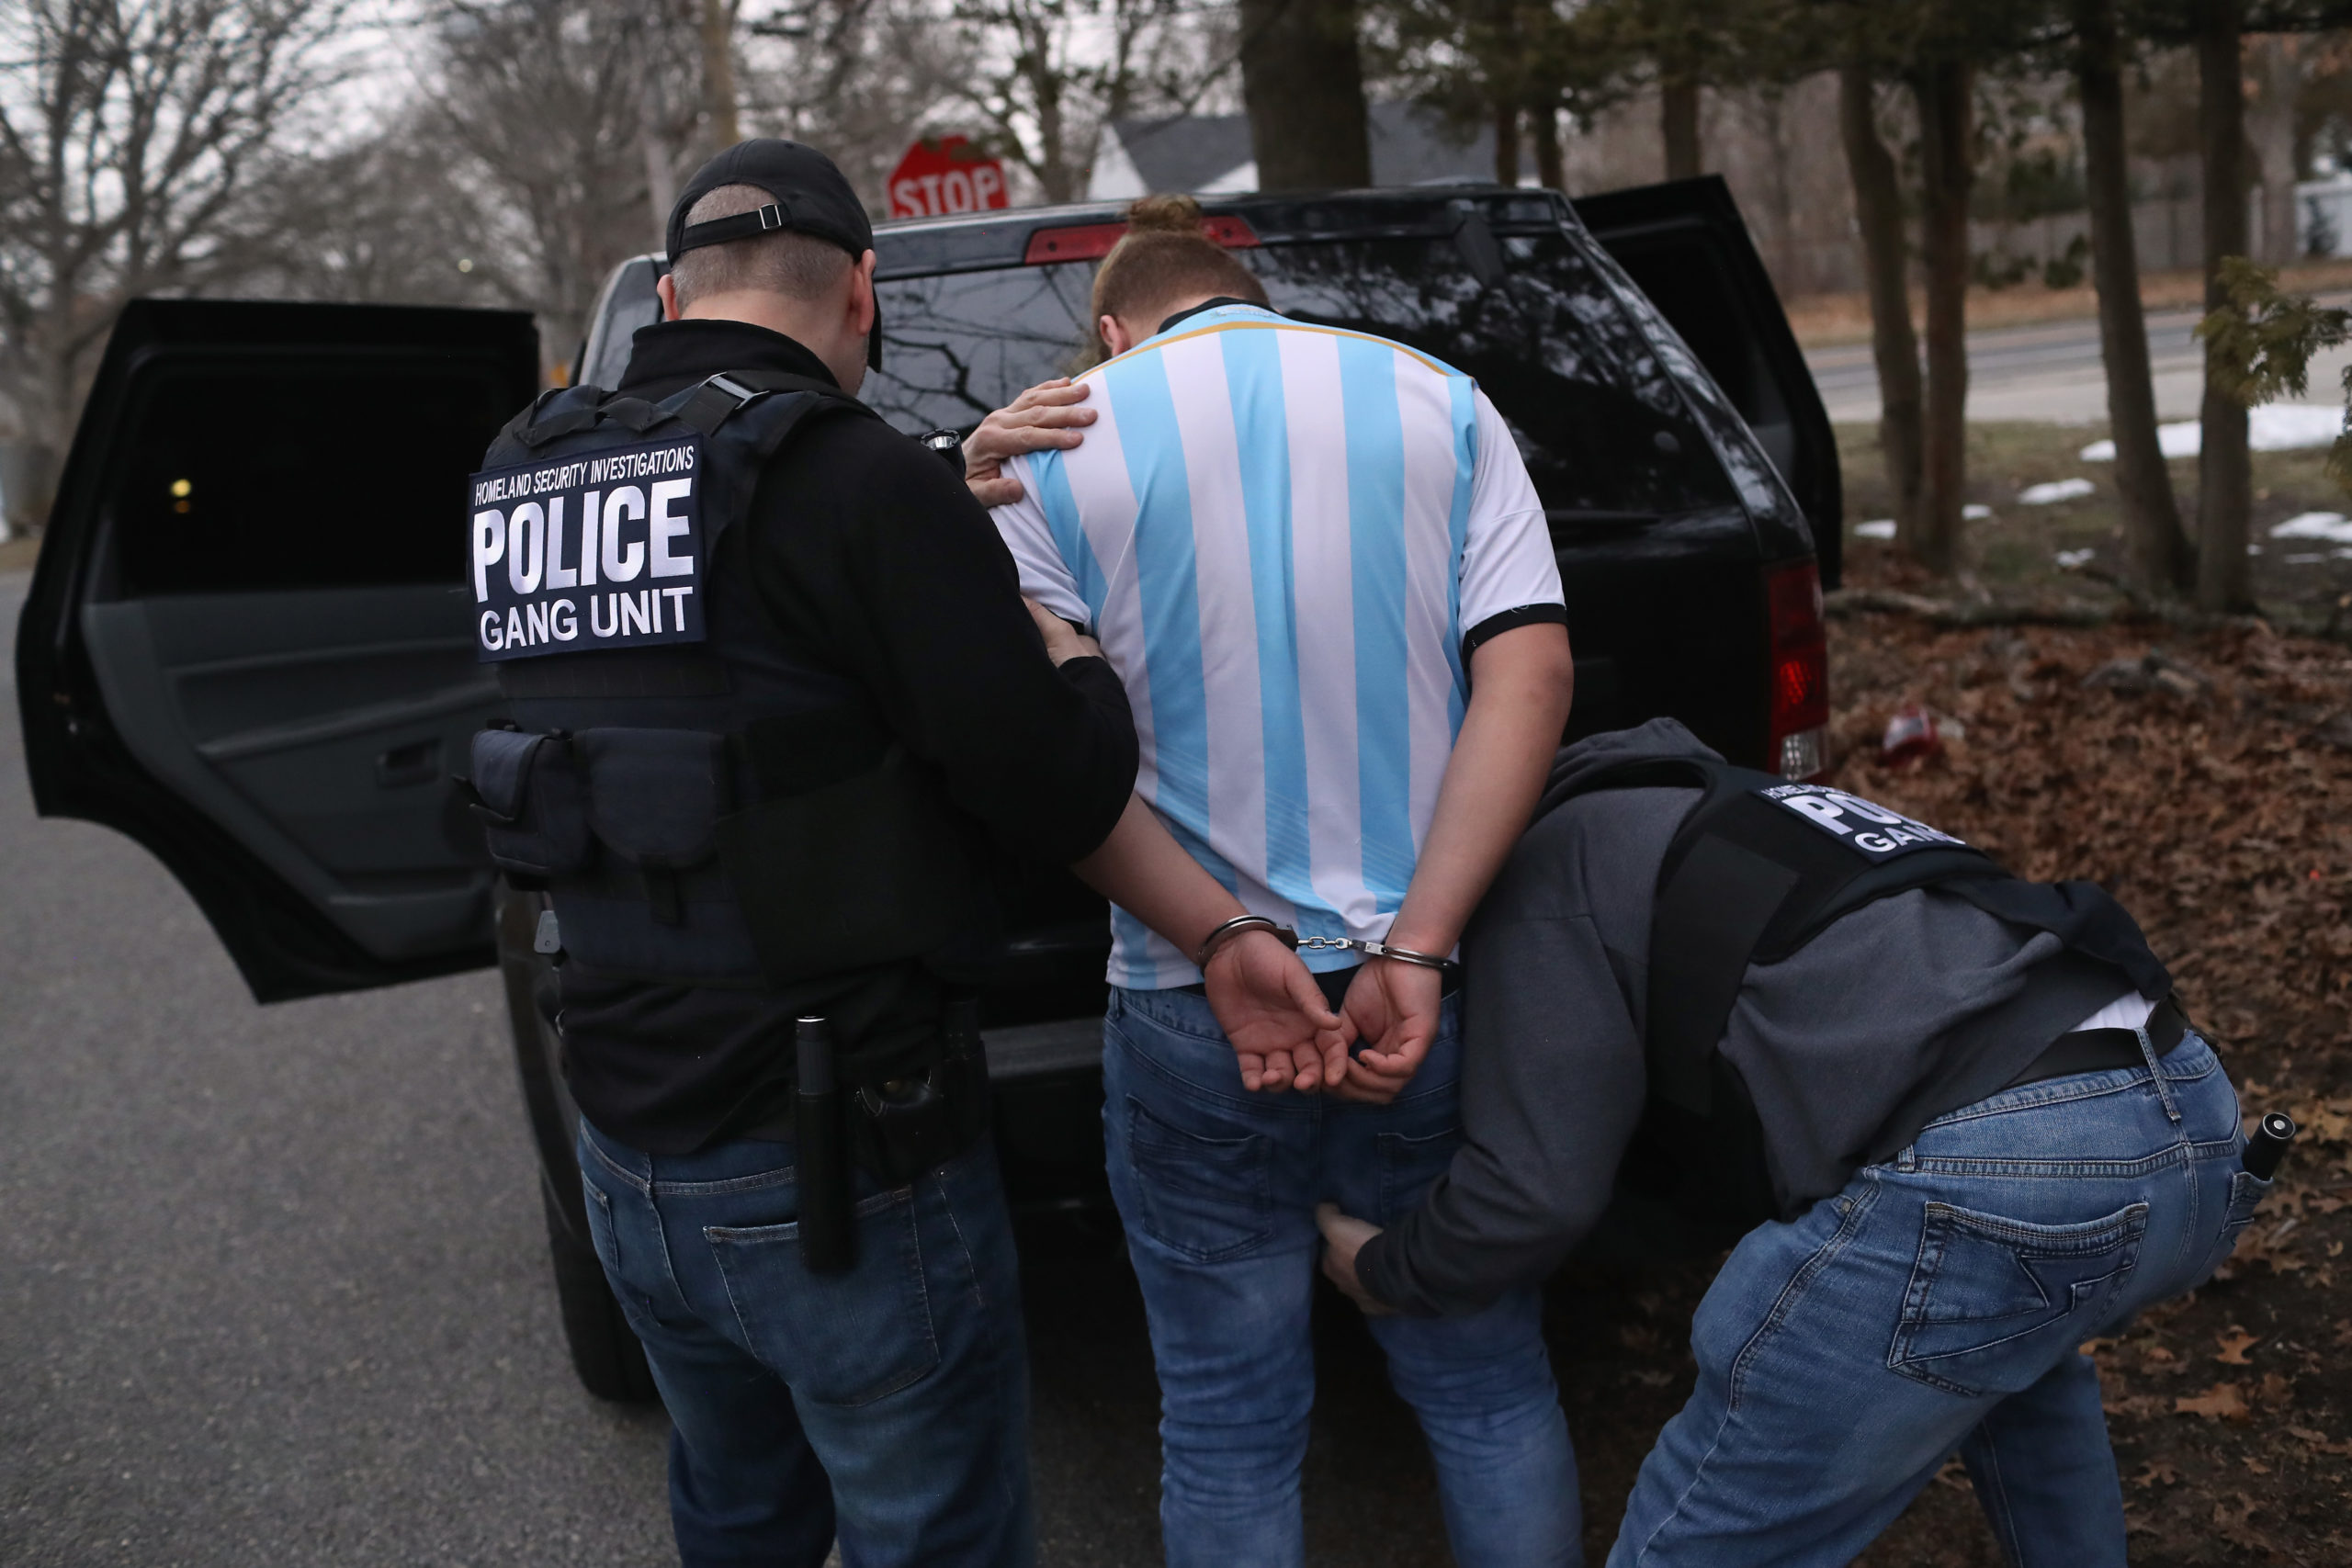 BRENTWOOD, NY - MARCH 29: Homeland Security Investigations (HSI) ICE agents frisk a suspected MS-13 gang member and Honduran immigrant after arresting him at his home on March 29, 2018 in Brentwood, New York. Overnight and into the morning federal agents and local police detained suspected gang members across Long Island in a surge of arrests. The actions were part of Operation Matador, a nearly year-long anti-gang effort targeting transnational gangs, with an emphasis on MS-13. (Photo by John Moore/Getty Images)